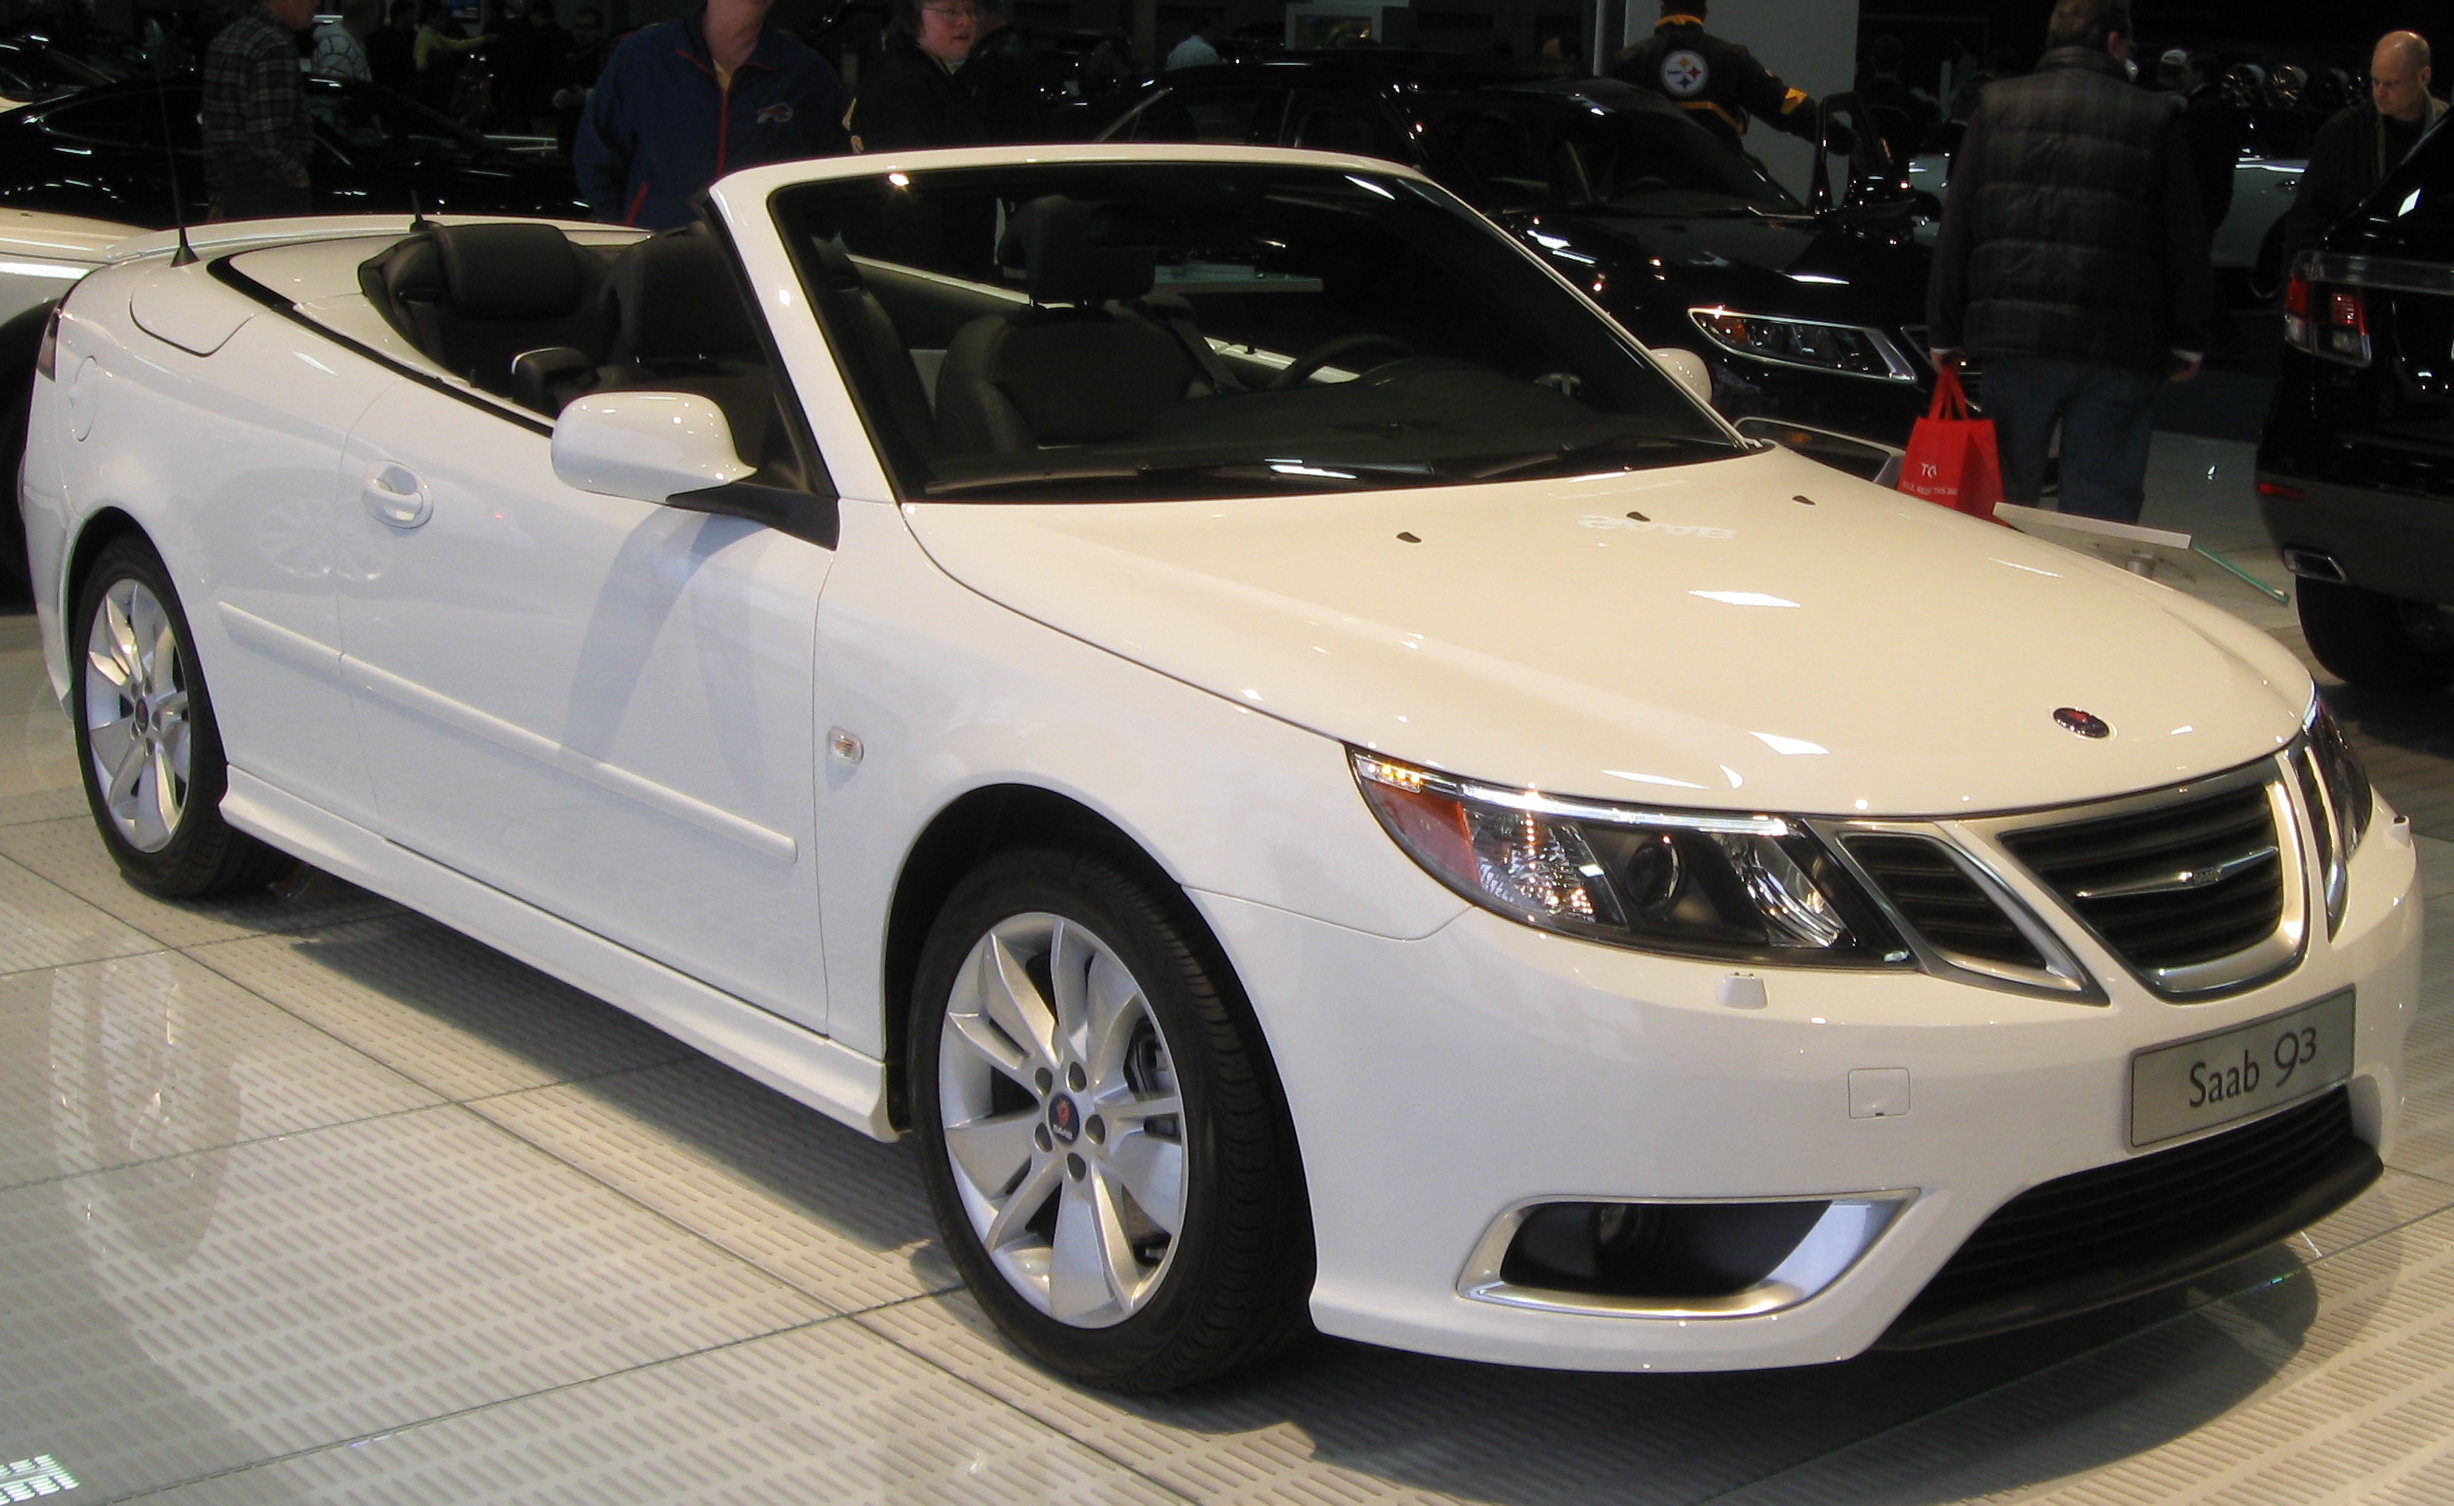 Pictures of saab 9-3 #3